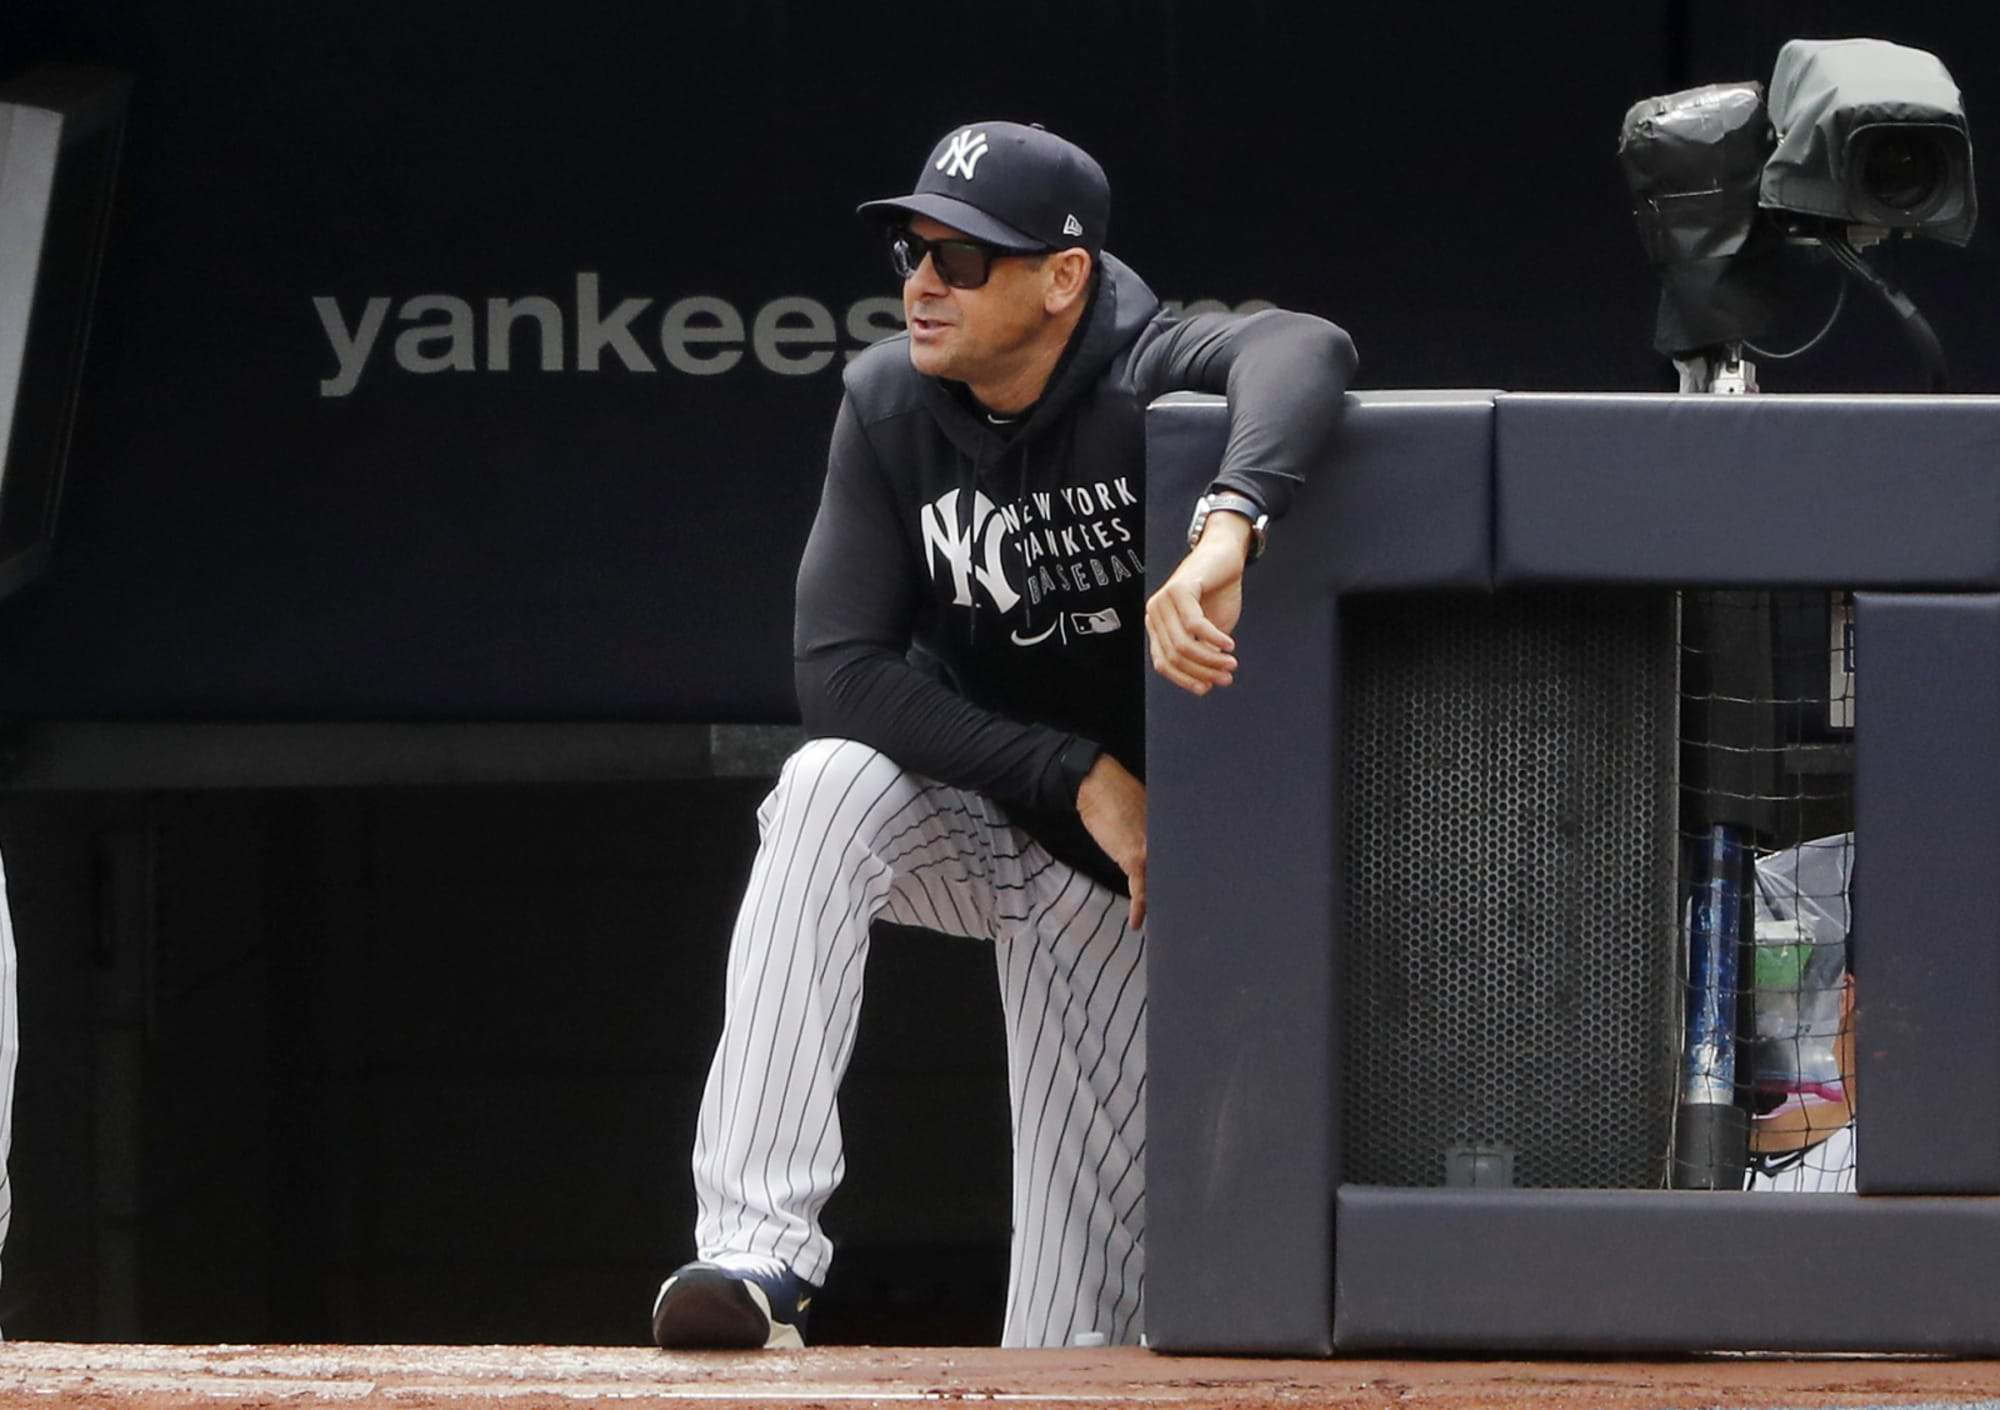 Yankees lineup proves Aaron Boone punted against Max Scherzer